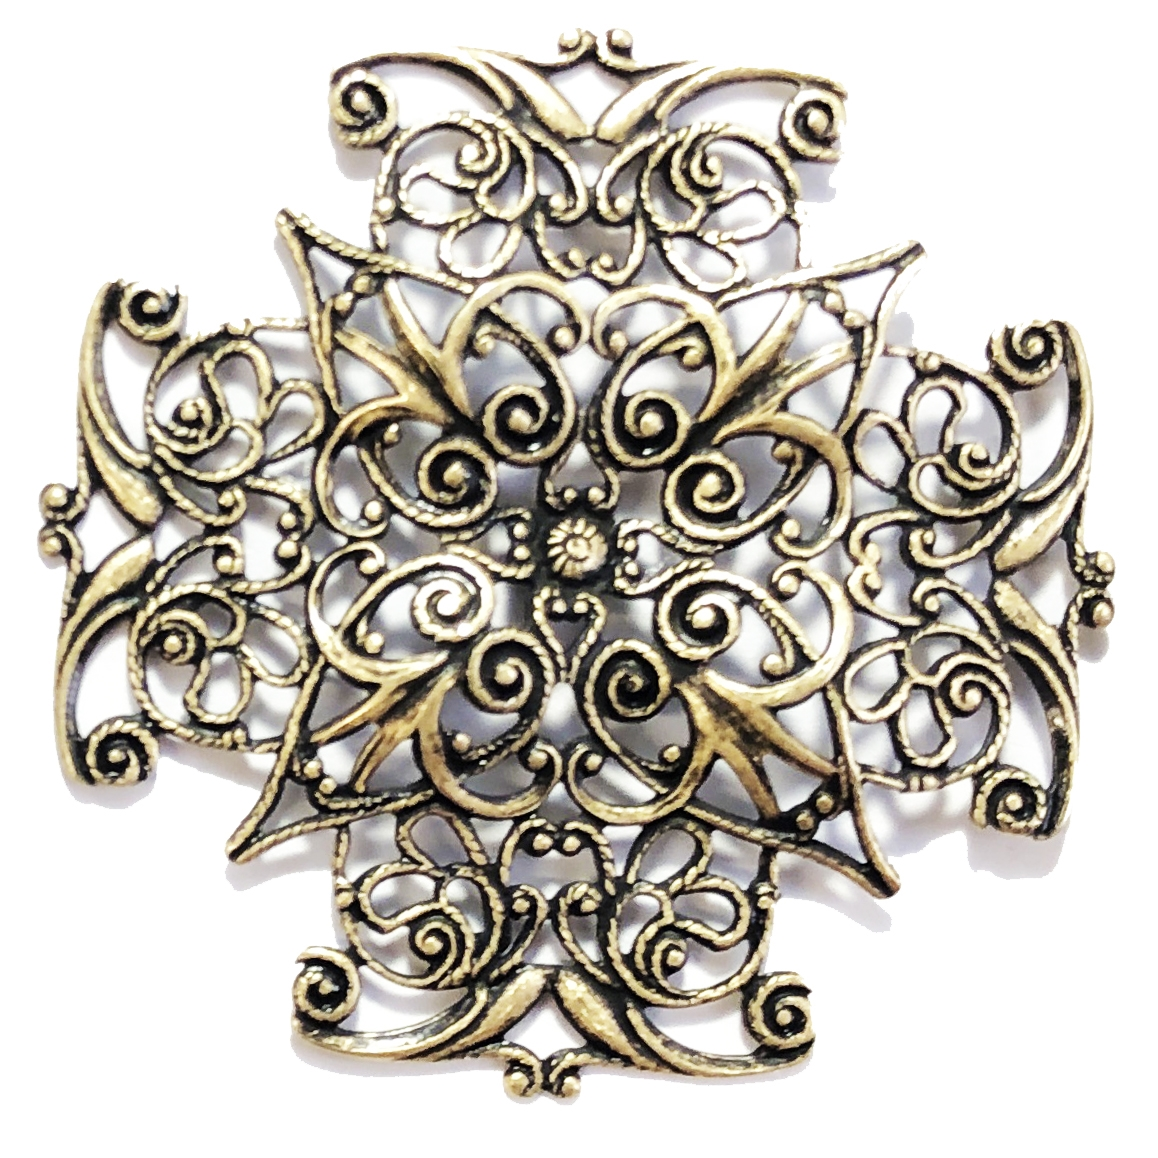 Brass Filigree, Vintage Style, Stampings, Dapt, Made in the USA, 47mm, Brass Ox Finish, Nickel Free